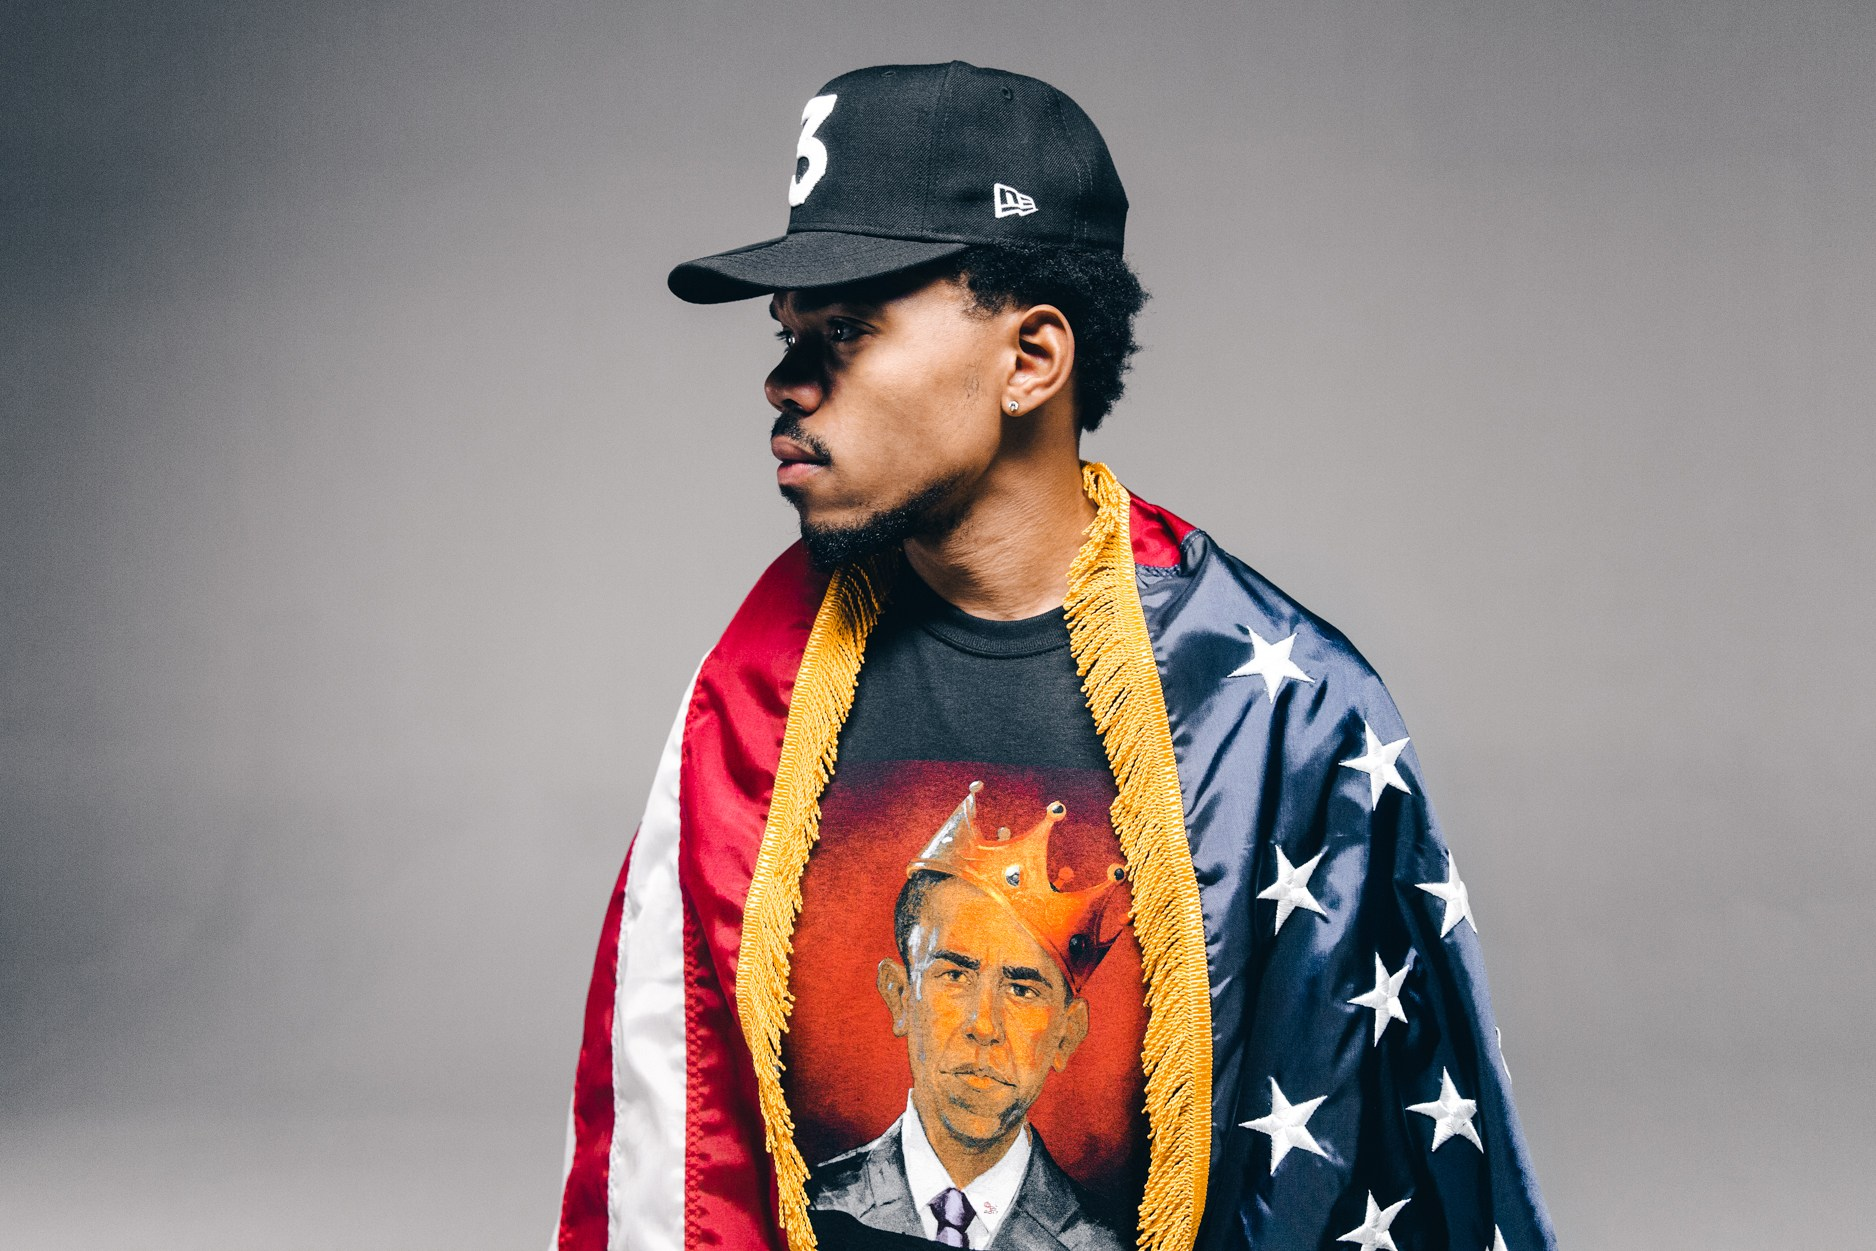 Chance The Rapper est l'égérie de la collection « Thank you Obama » de Joe Freshgoods